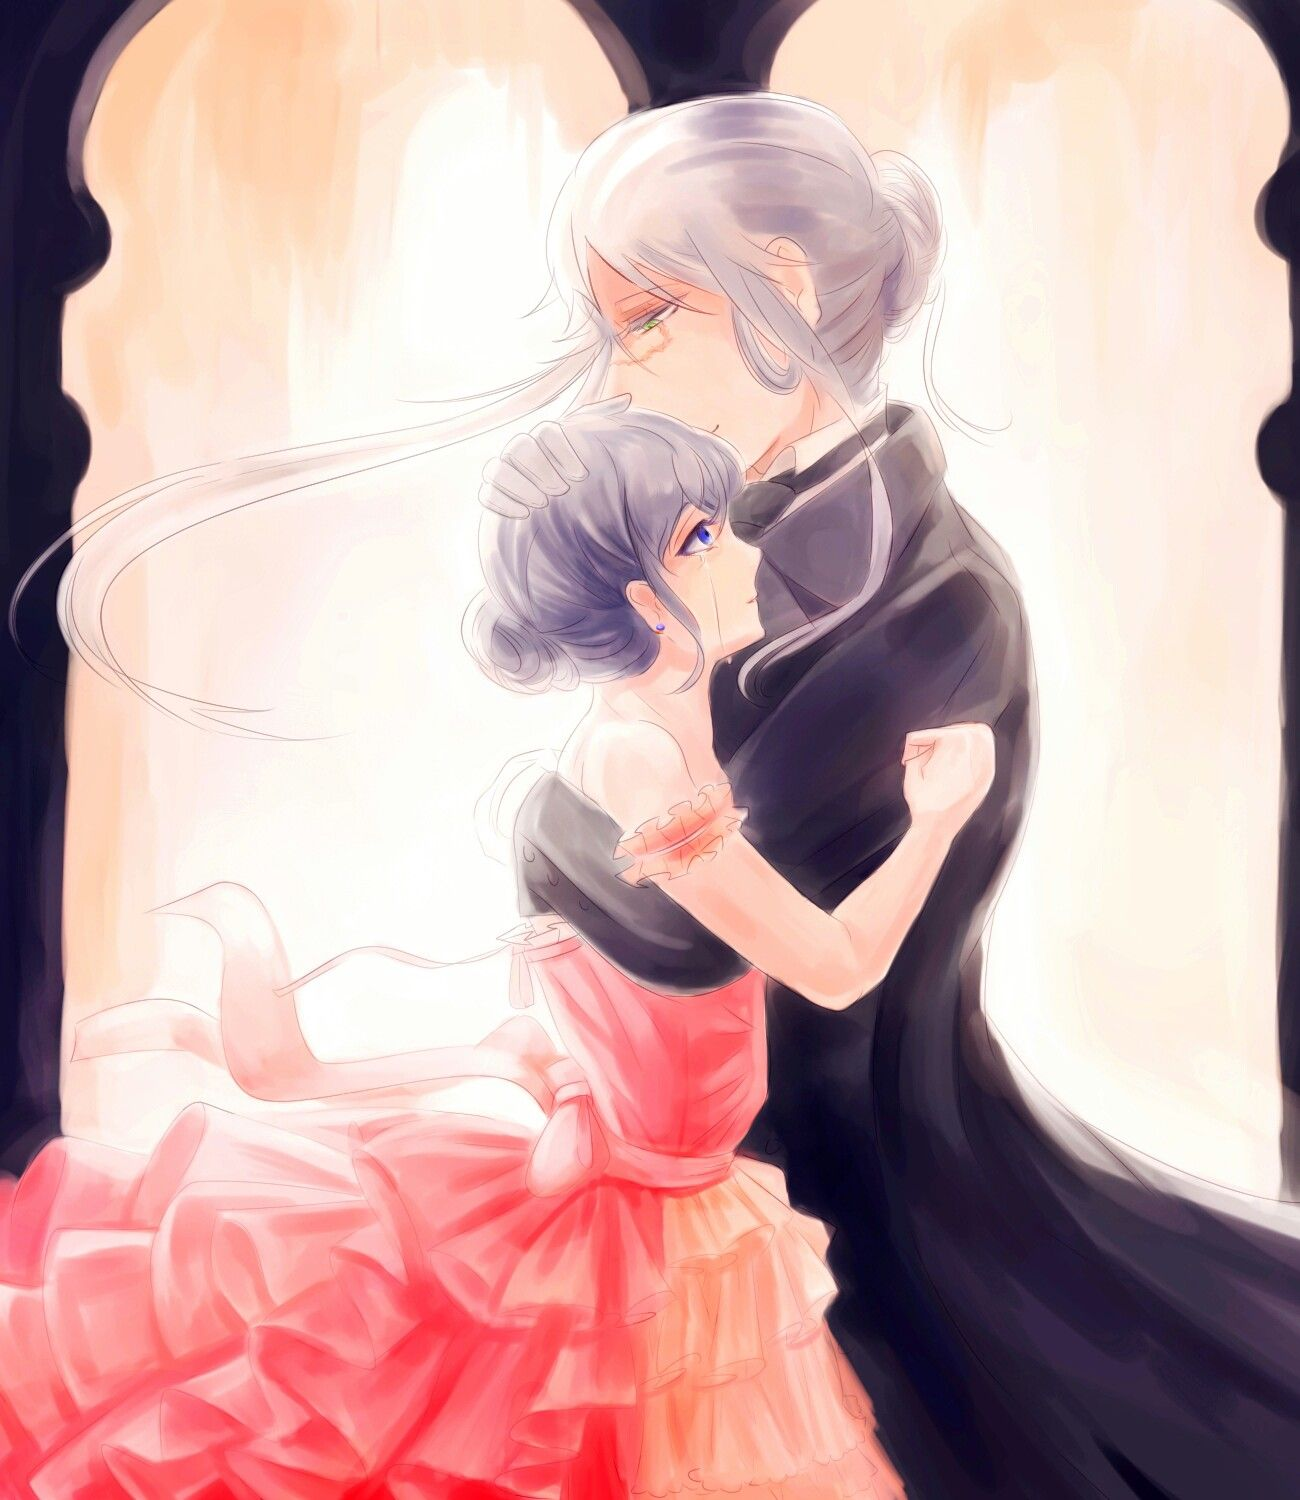 Forget all sad feelings.. Would you like to party with me all night dancing? Graceful Lady Phantomhive..?